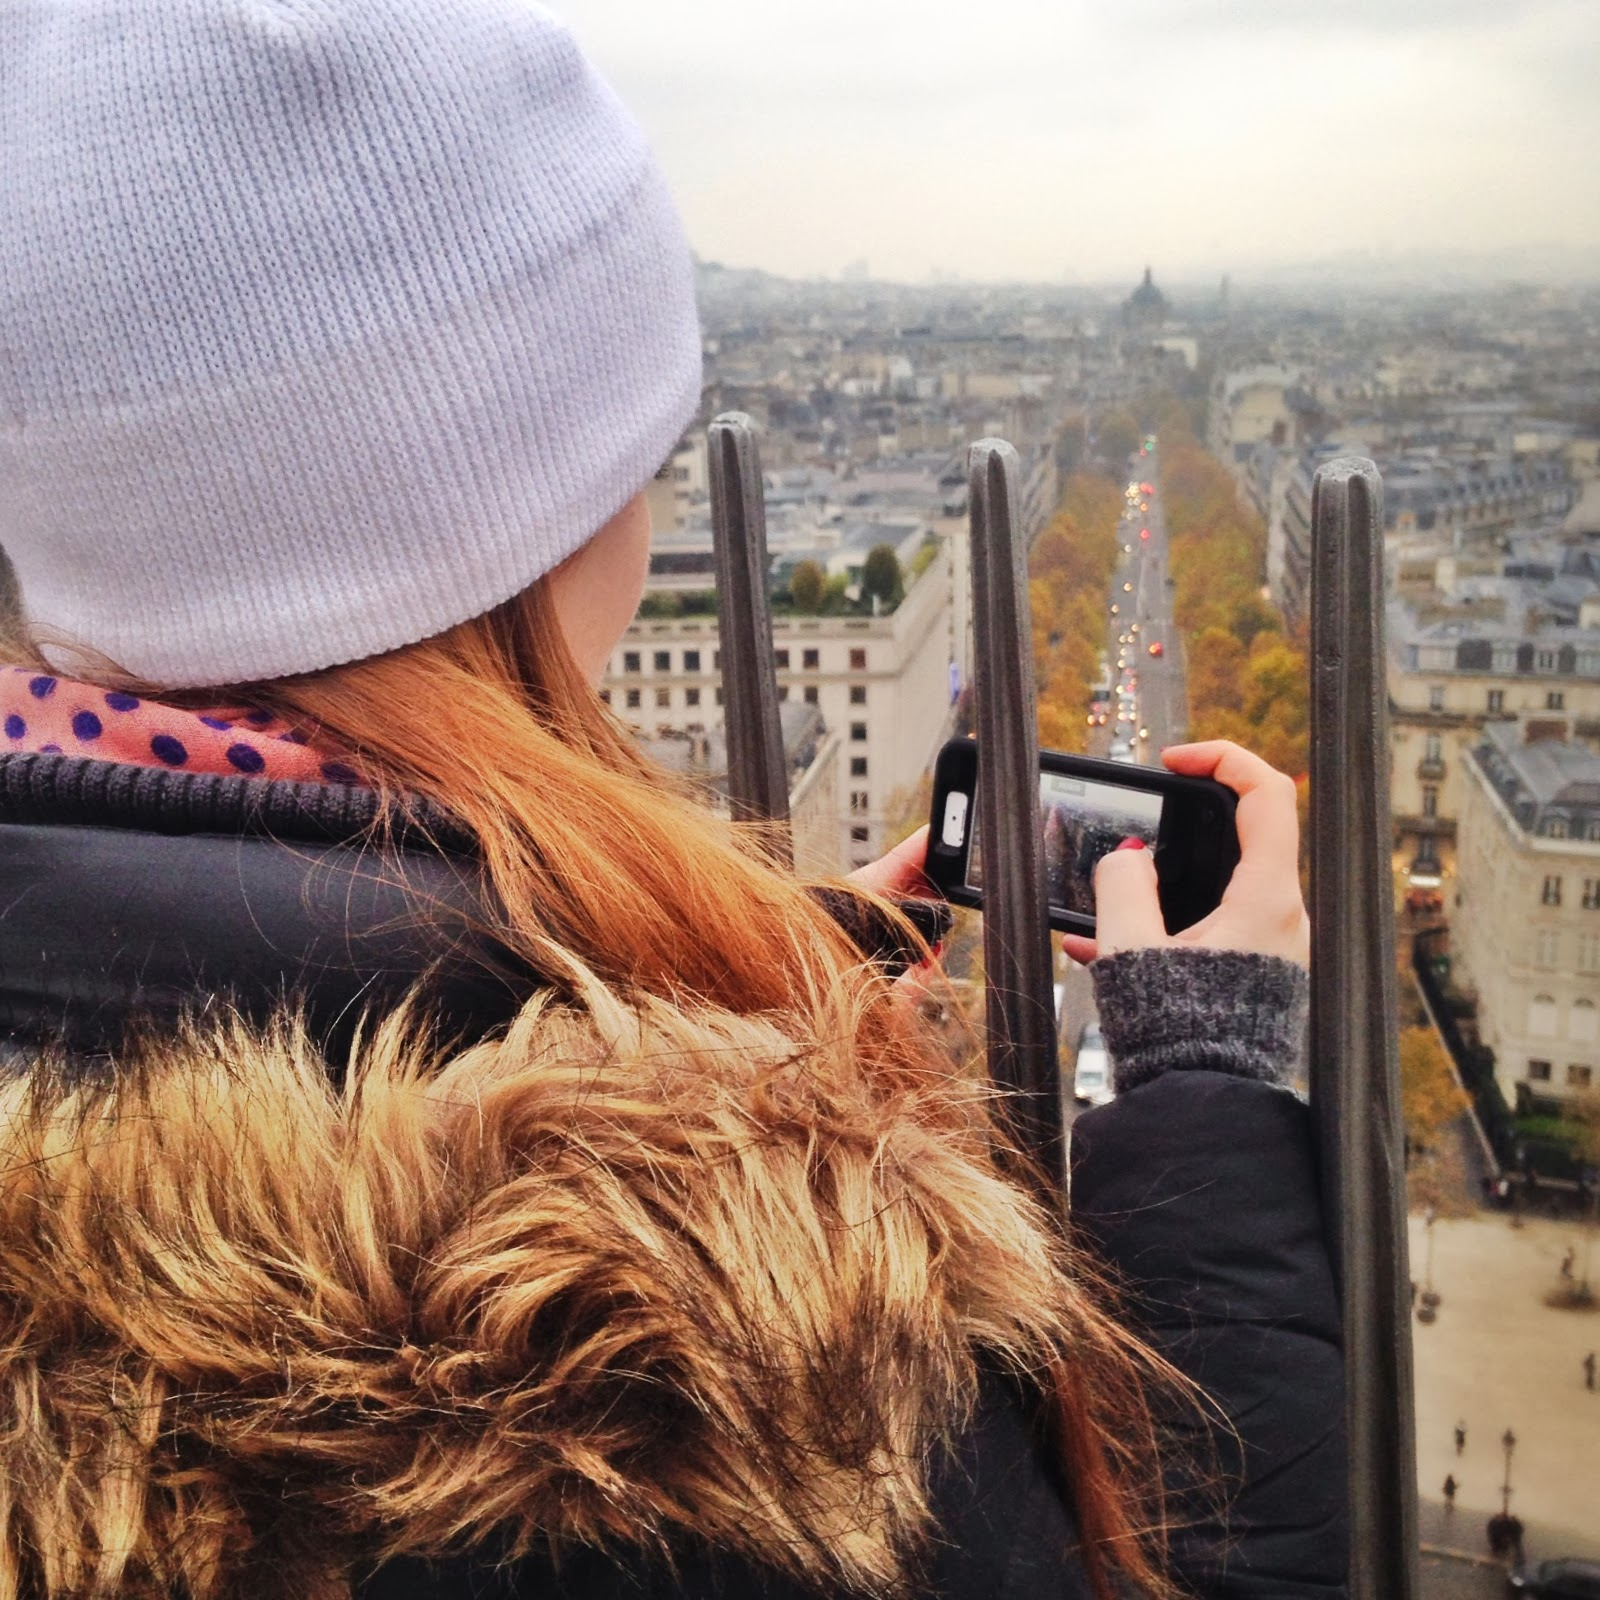 Photos from the top of the Arc de triomphe in paris